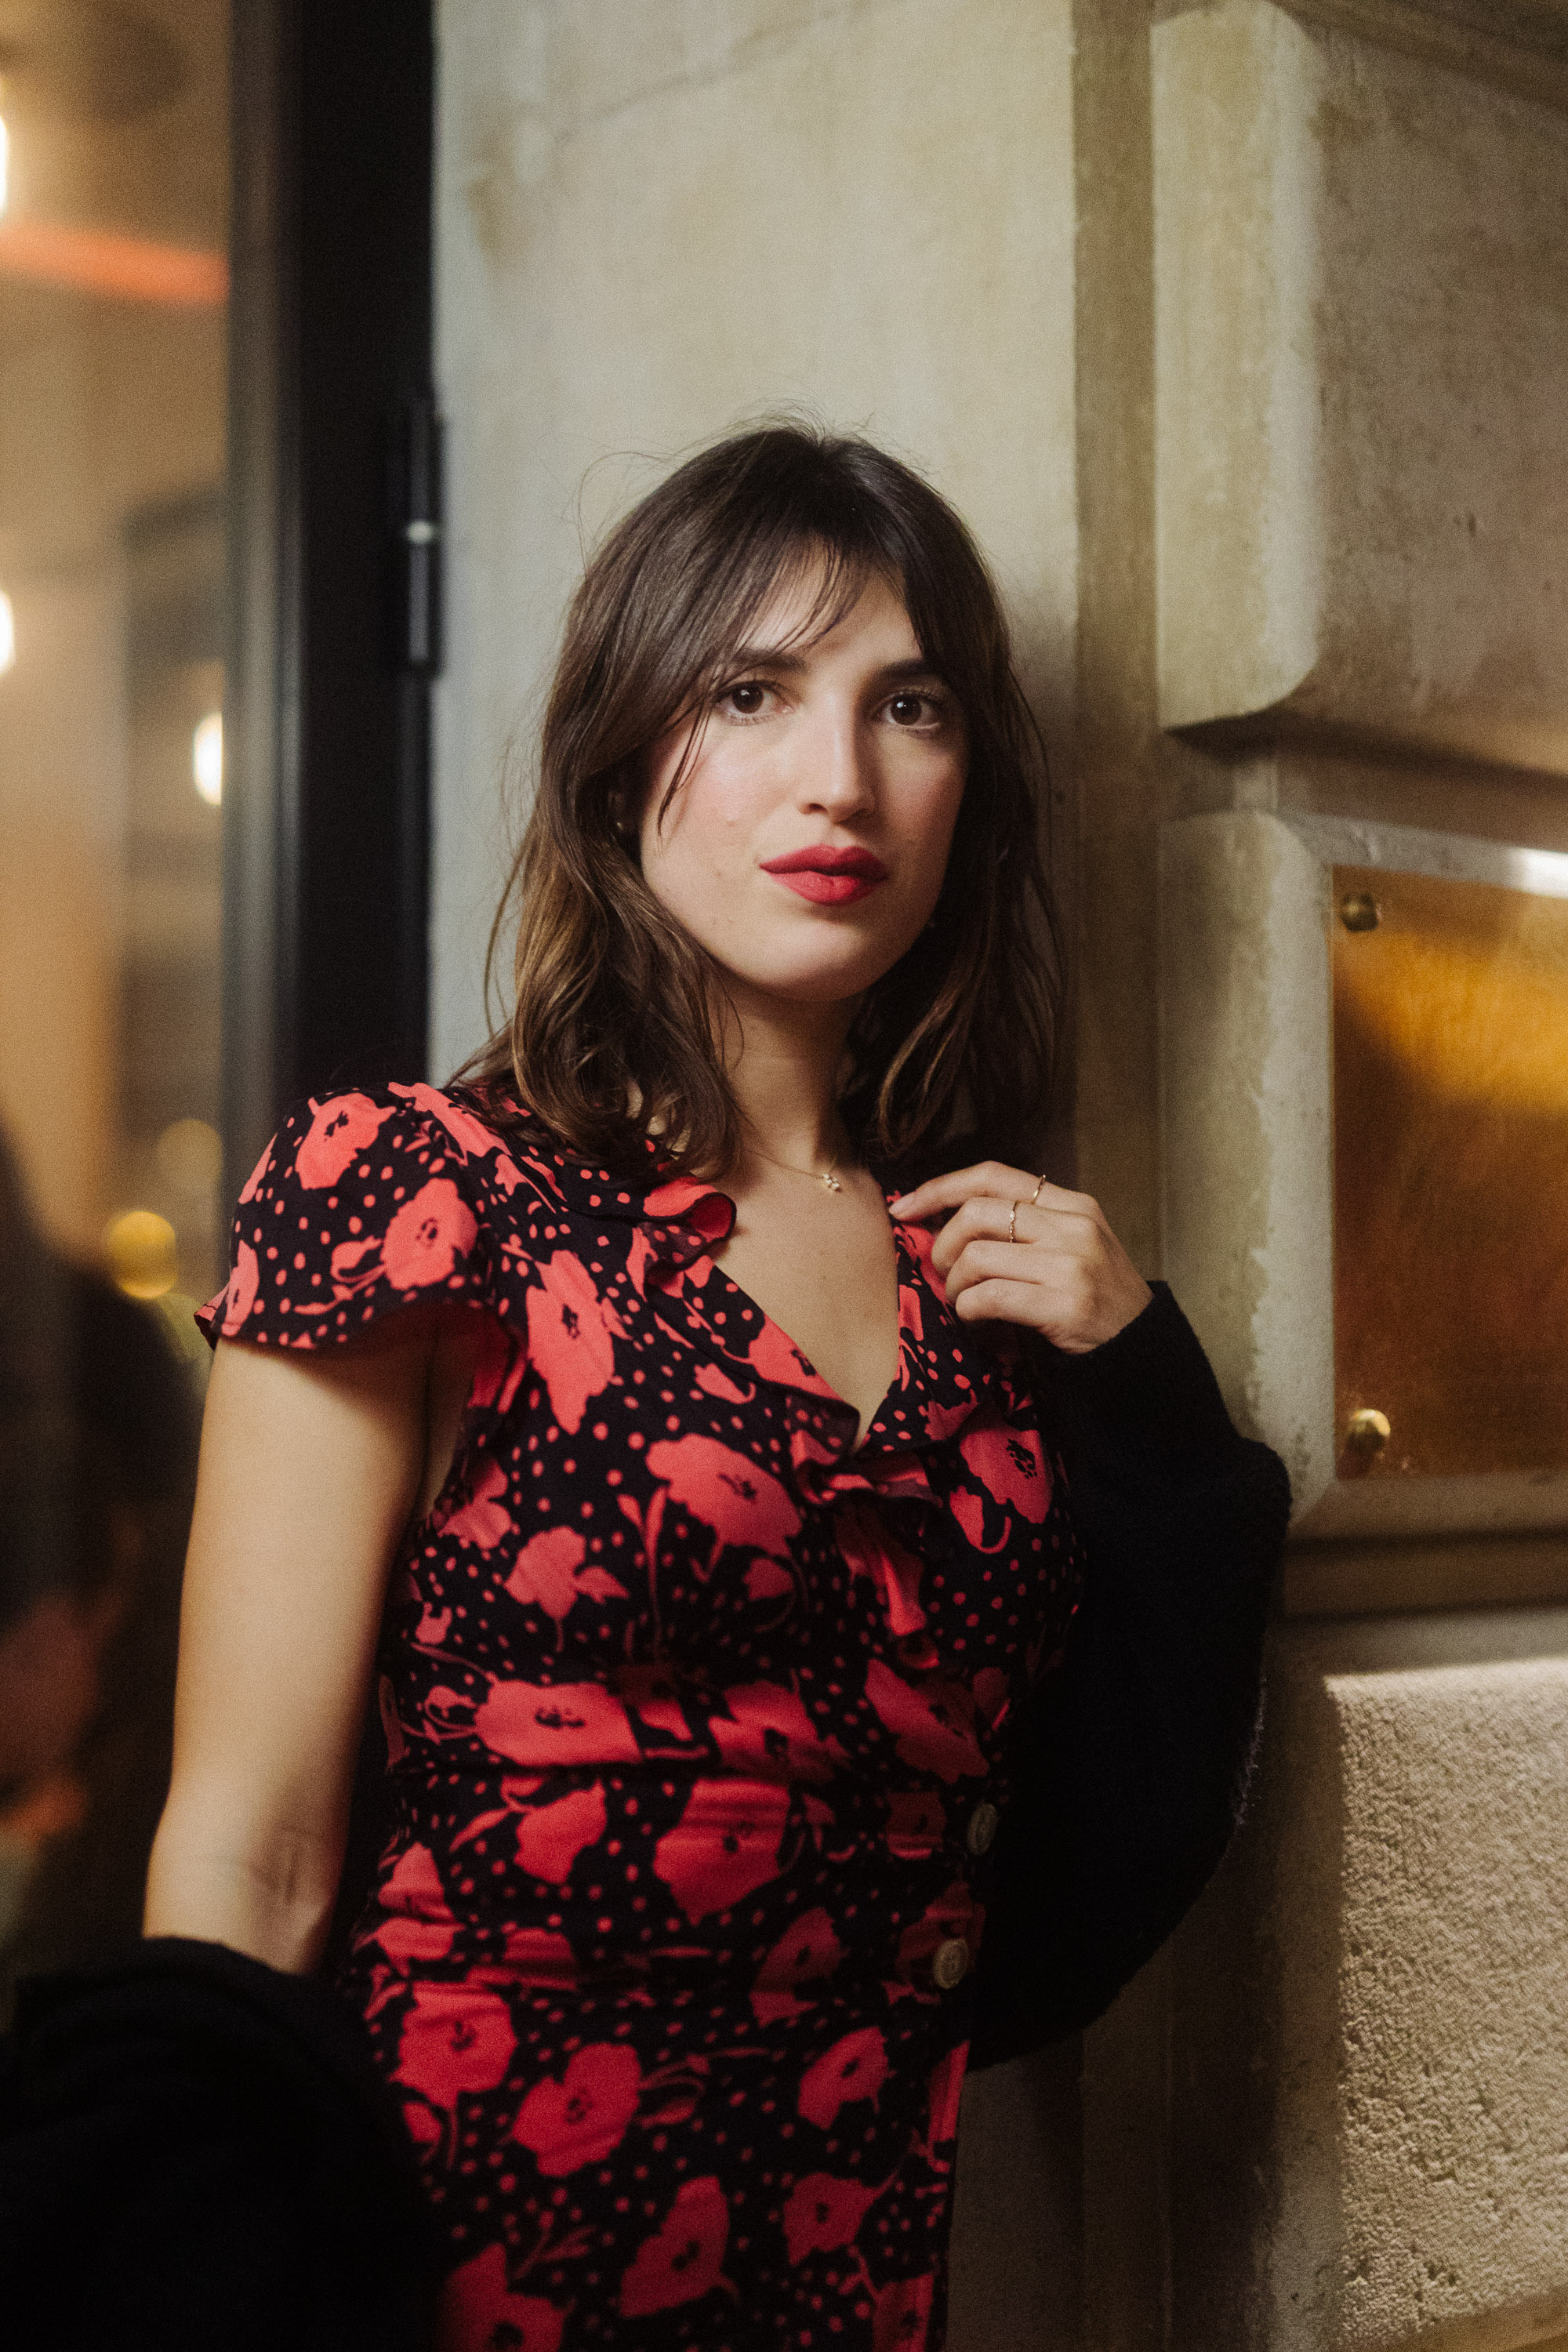 Jeanne Damas at her restaurant Chez Jeanne